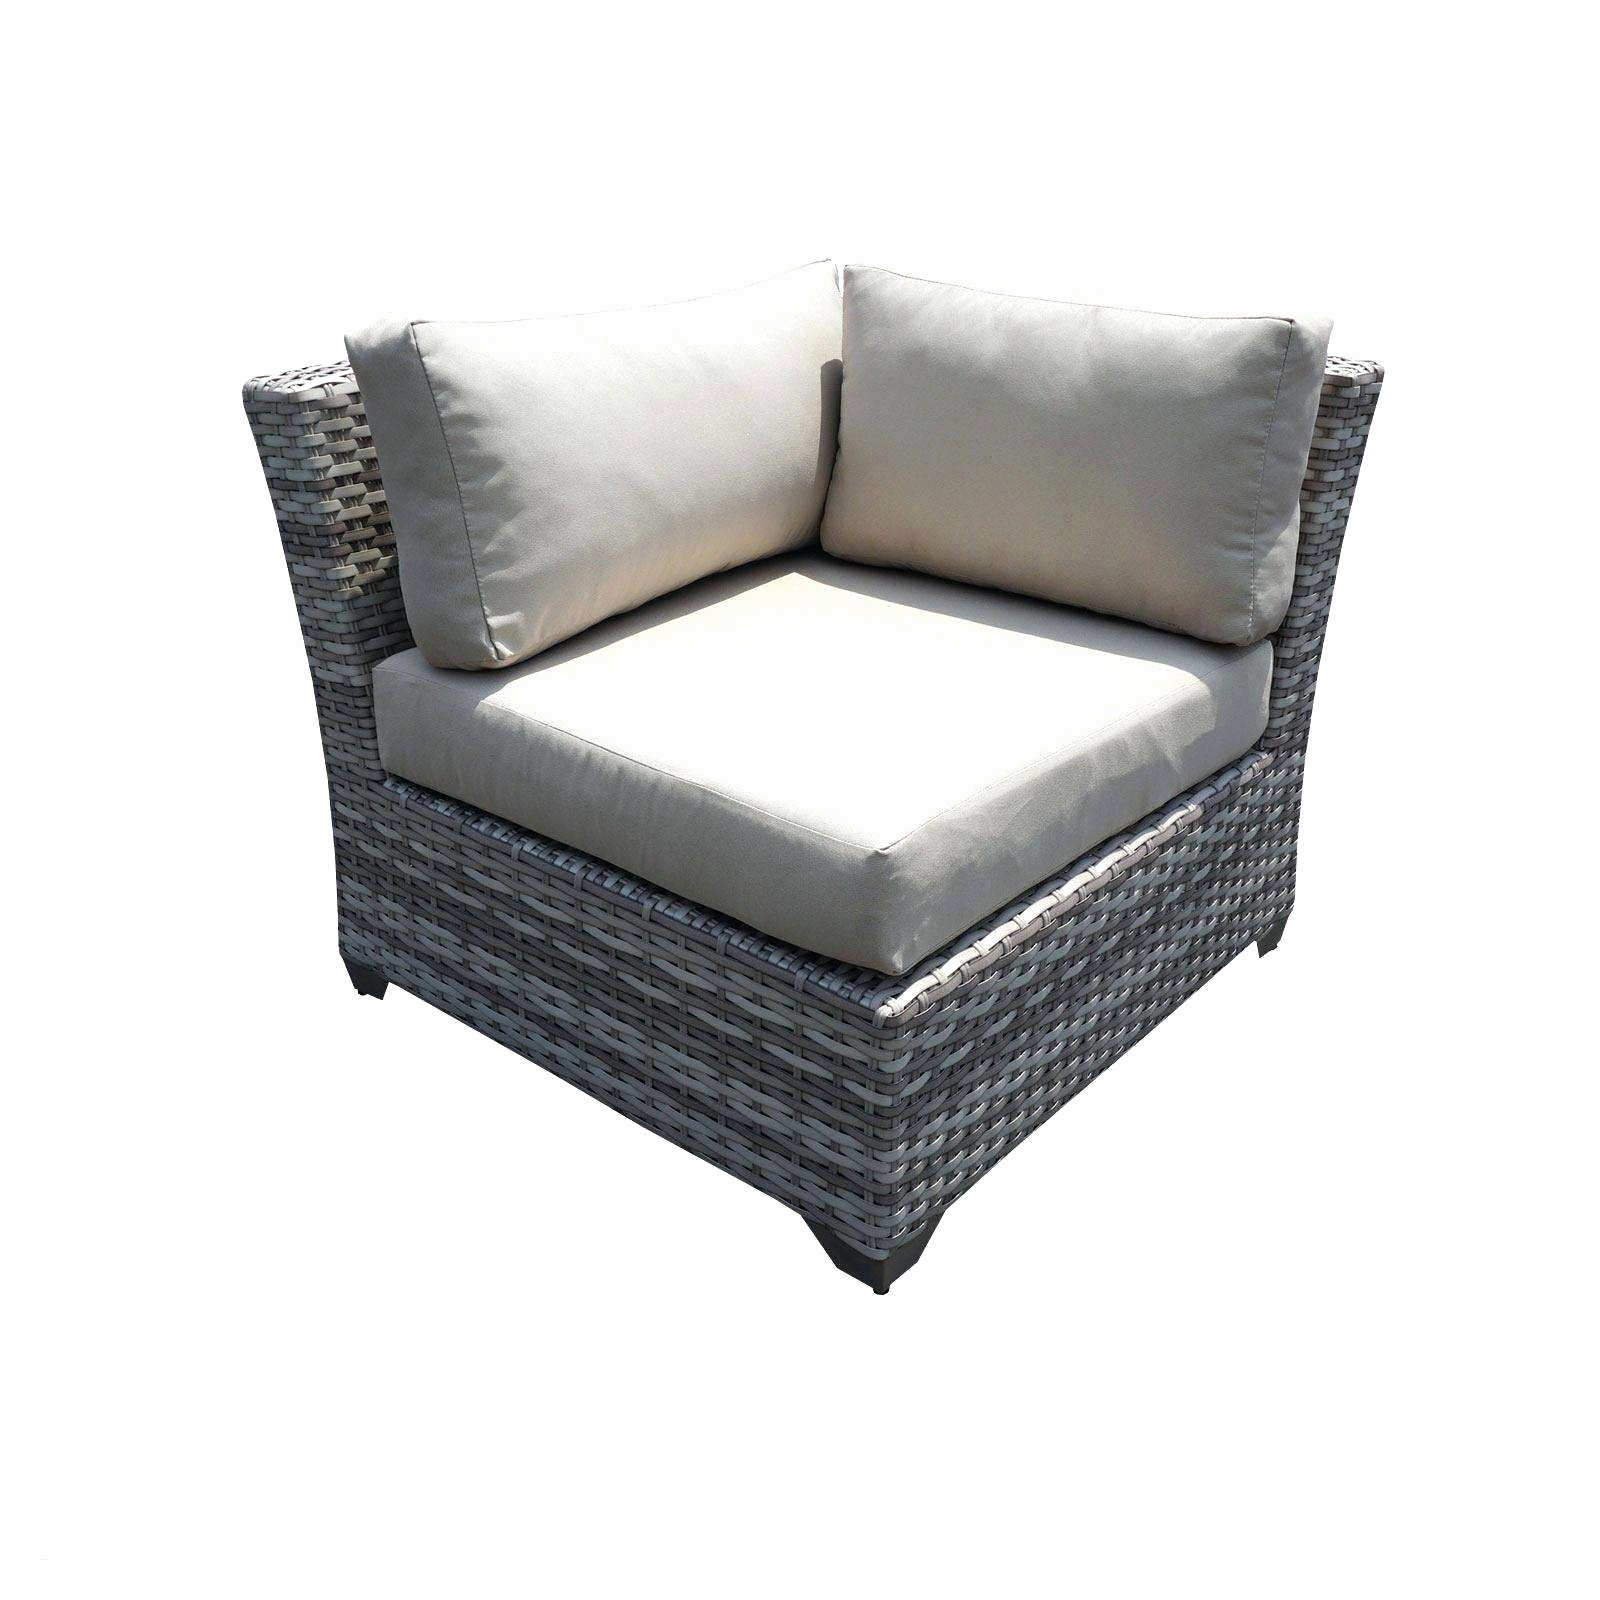 Simple 25 2 Piece Sectionals With Chaise Awesome | Russiandesignshow Within Aquarius Light Grey 2 Piece Sectionals With Laf Chaise (View 21 of 30)